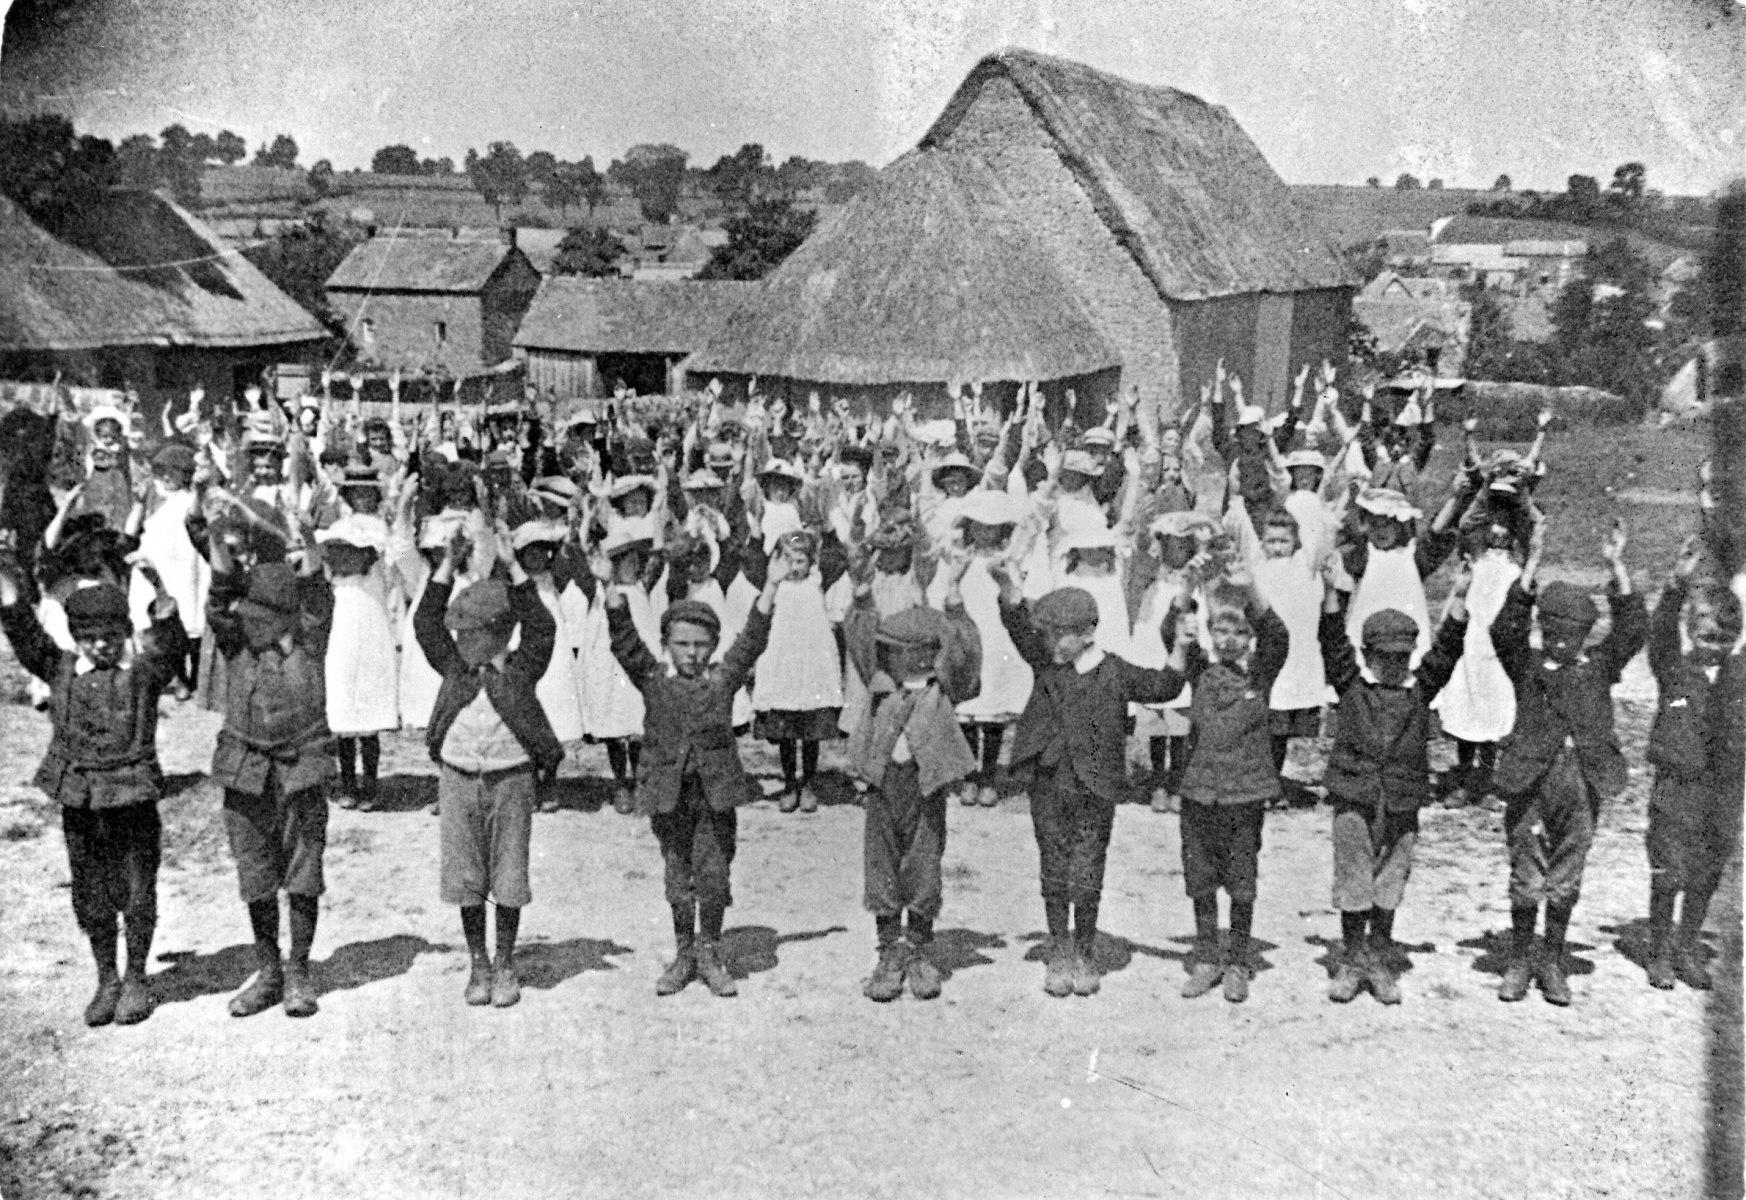 c1905 School children drilling in the school yard. Thatched Village Farm Barn / Langstone House in the background.